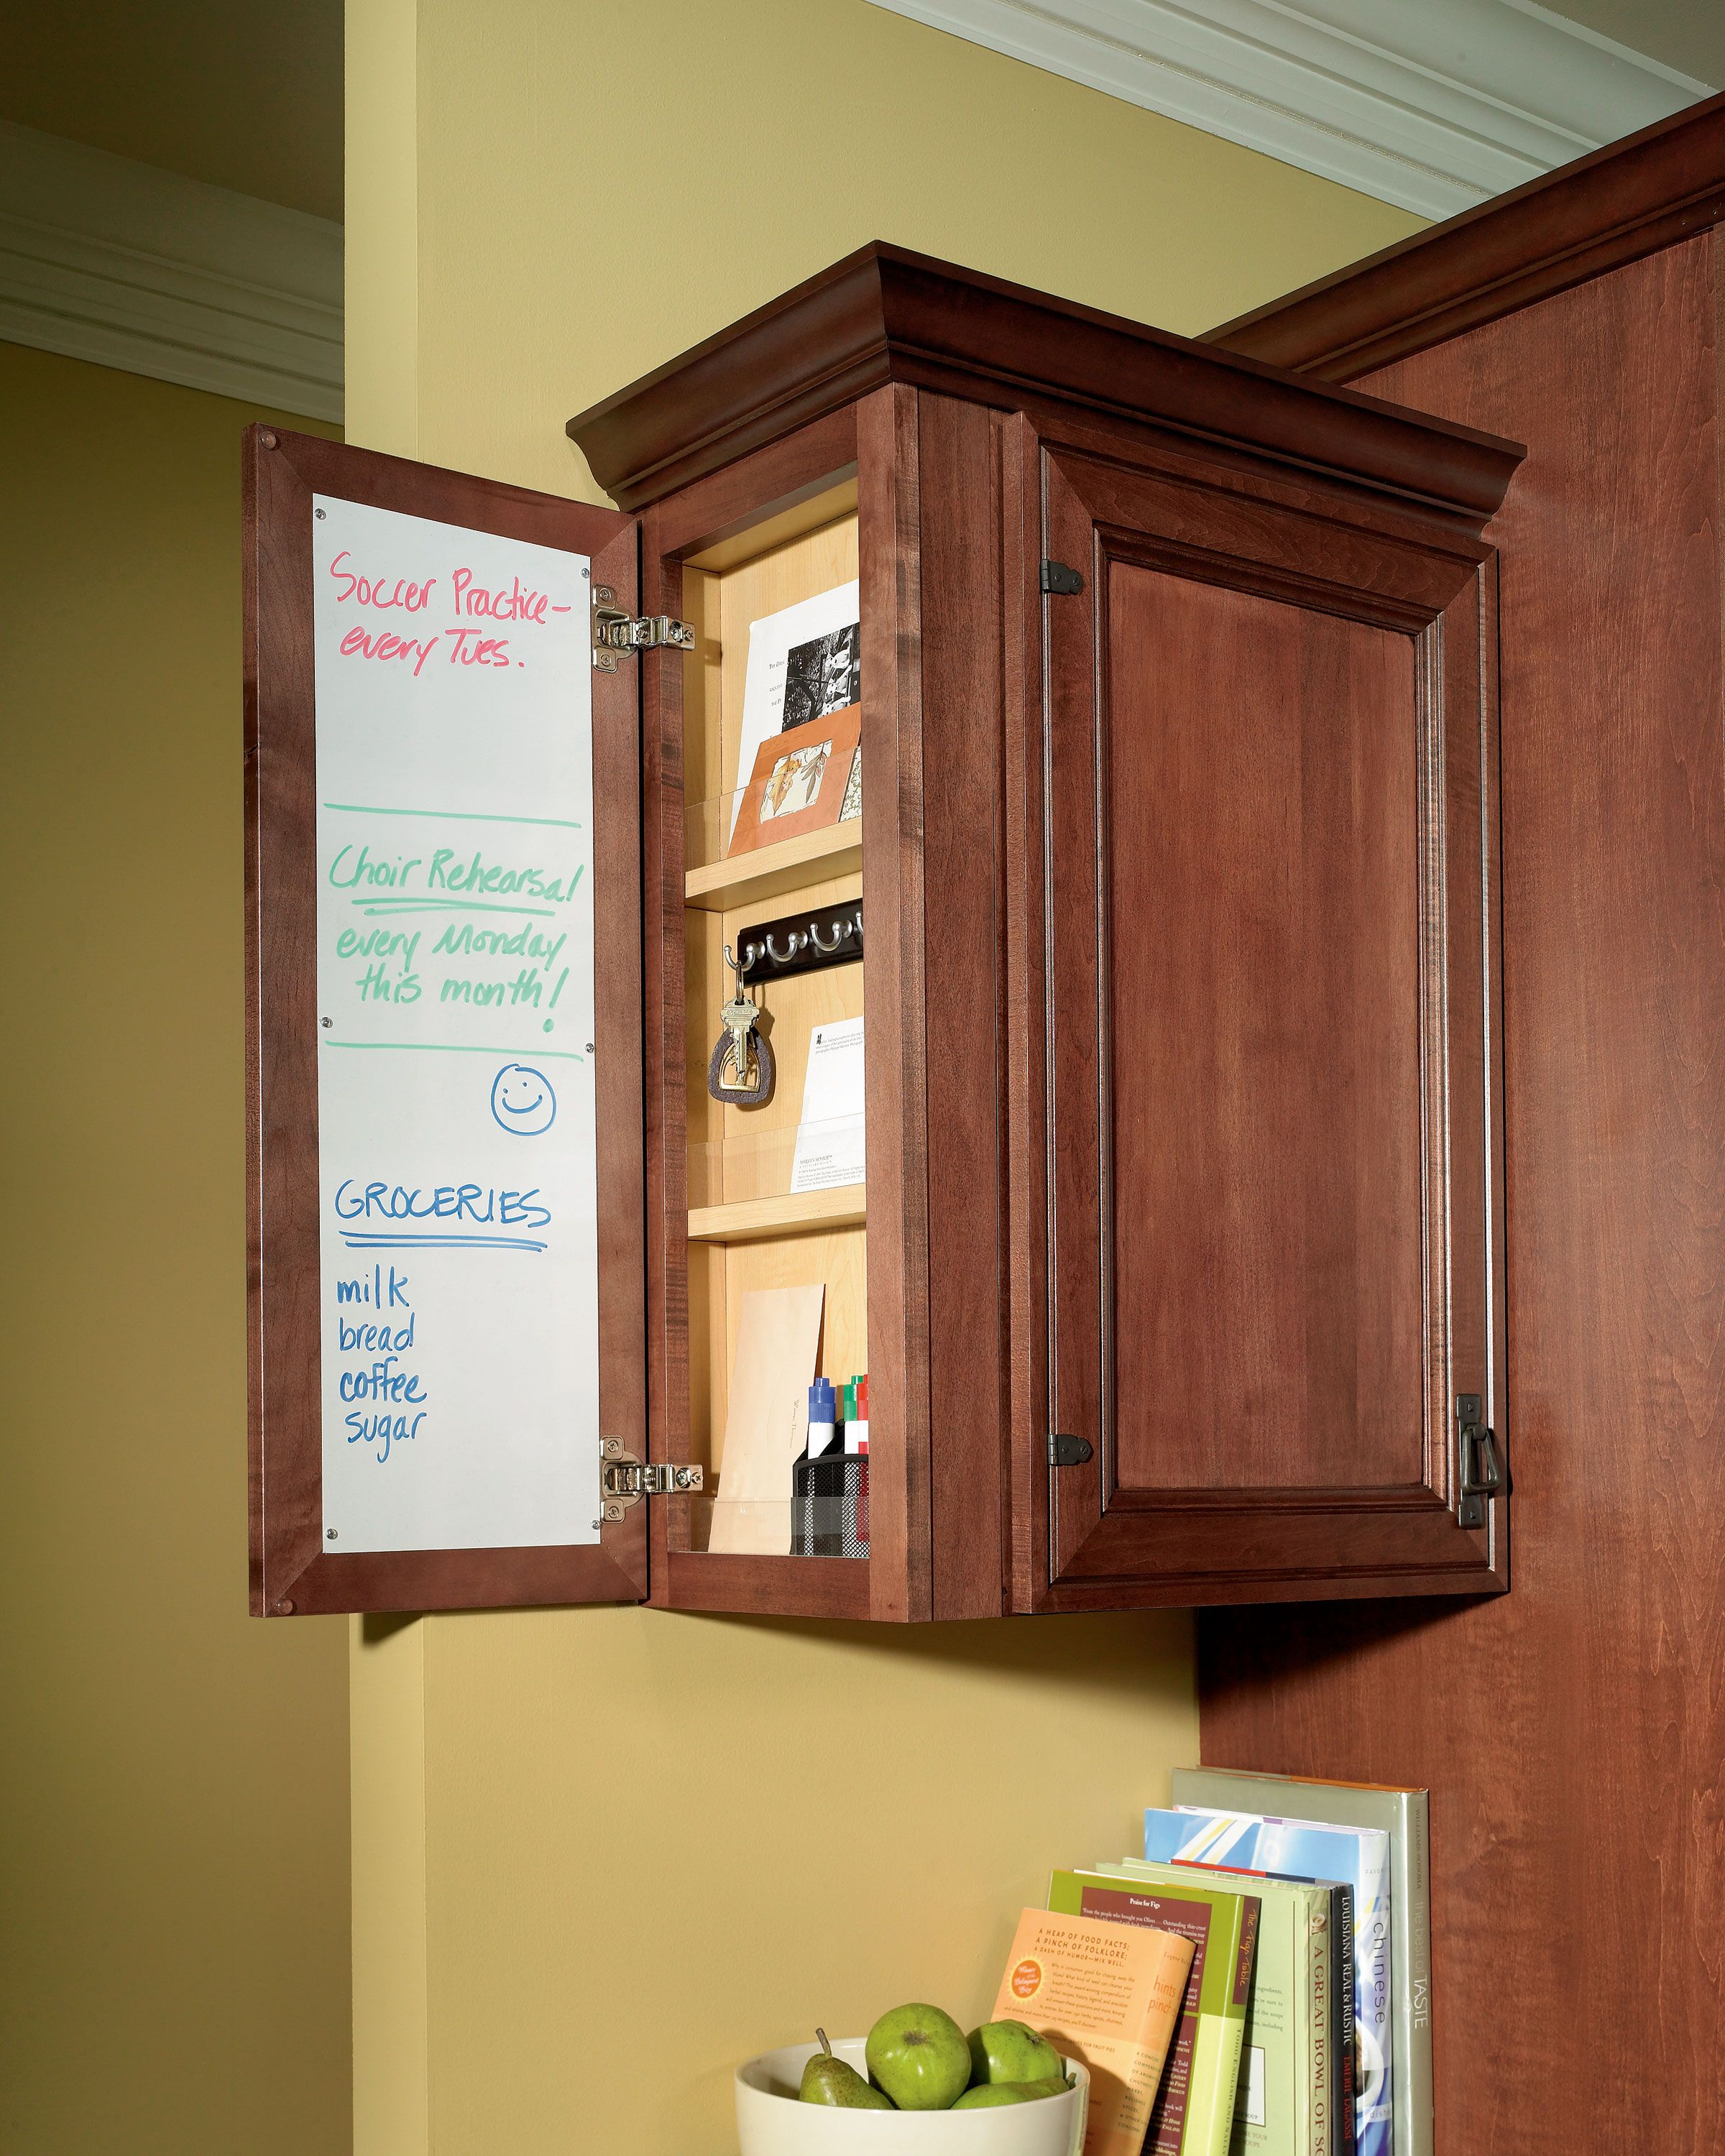 Schrock's Message Center helps keep your life and kitchen